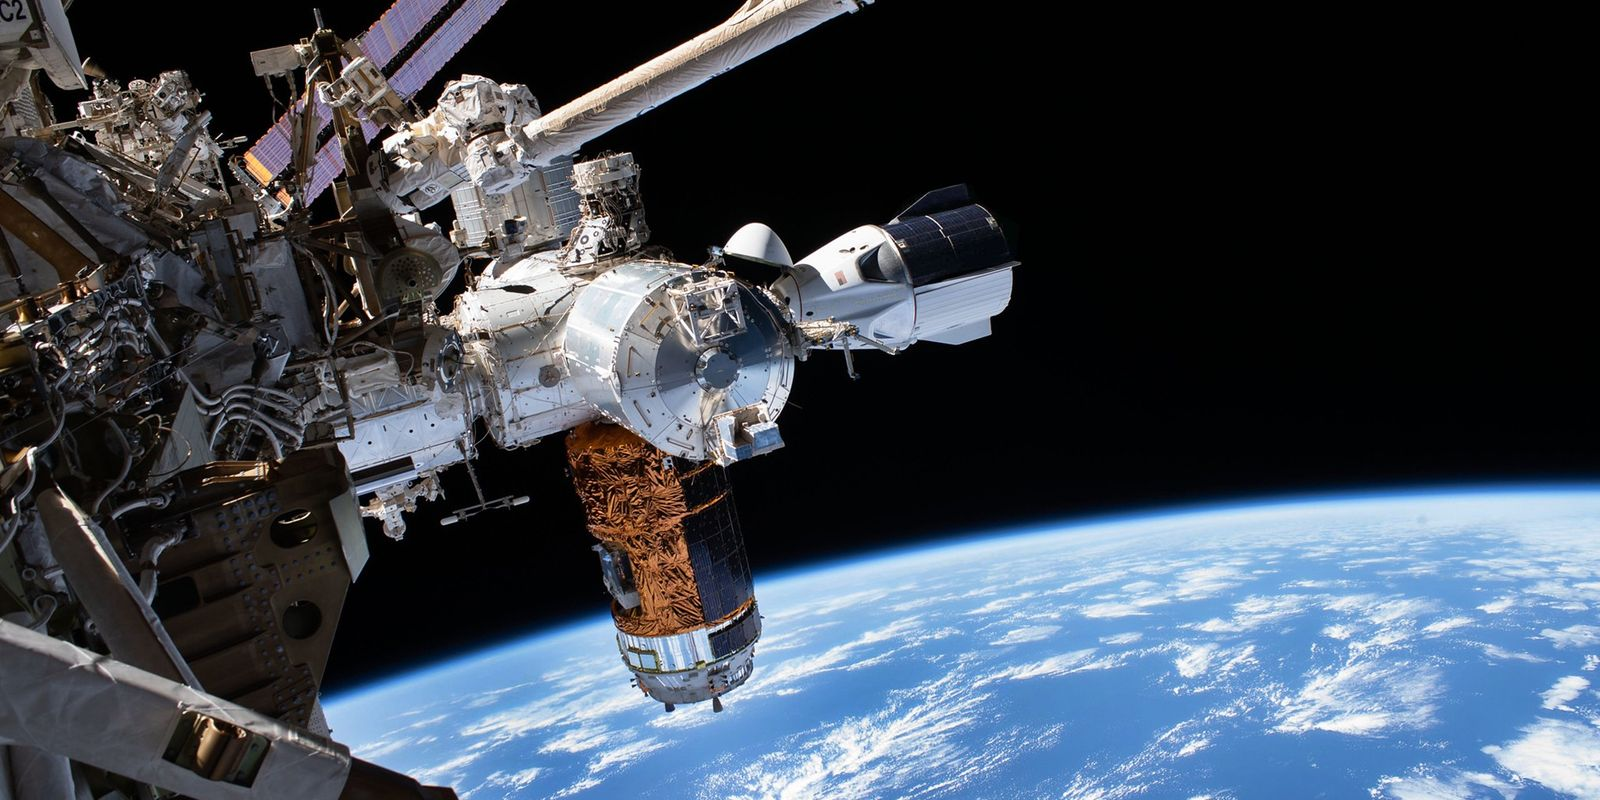 Astronauts return to Earth in SpaceX capsule. Revisit their mission aboard the space station.